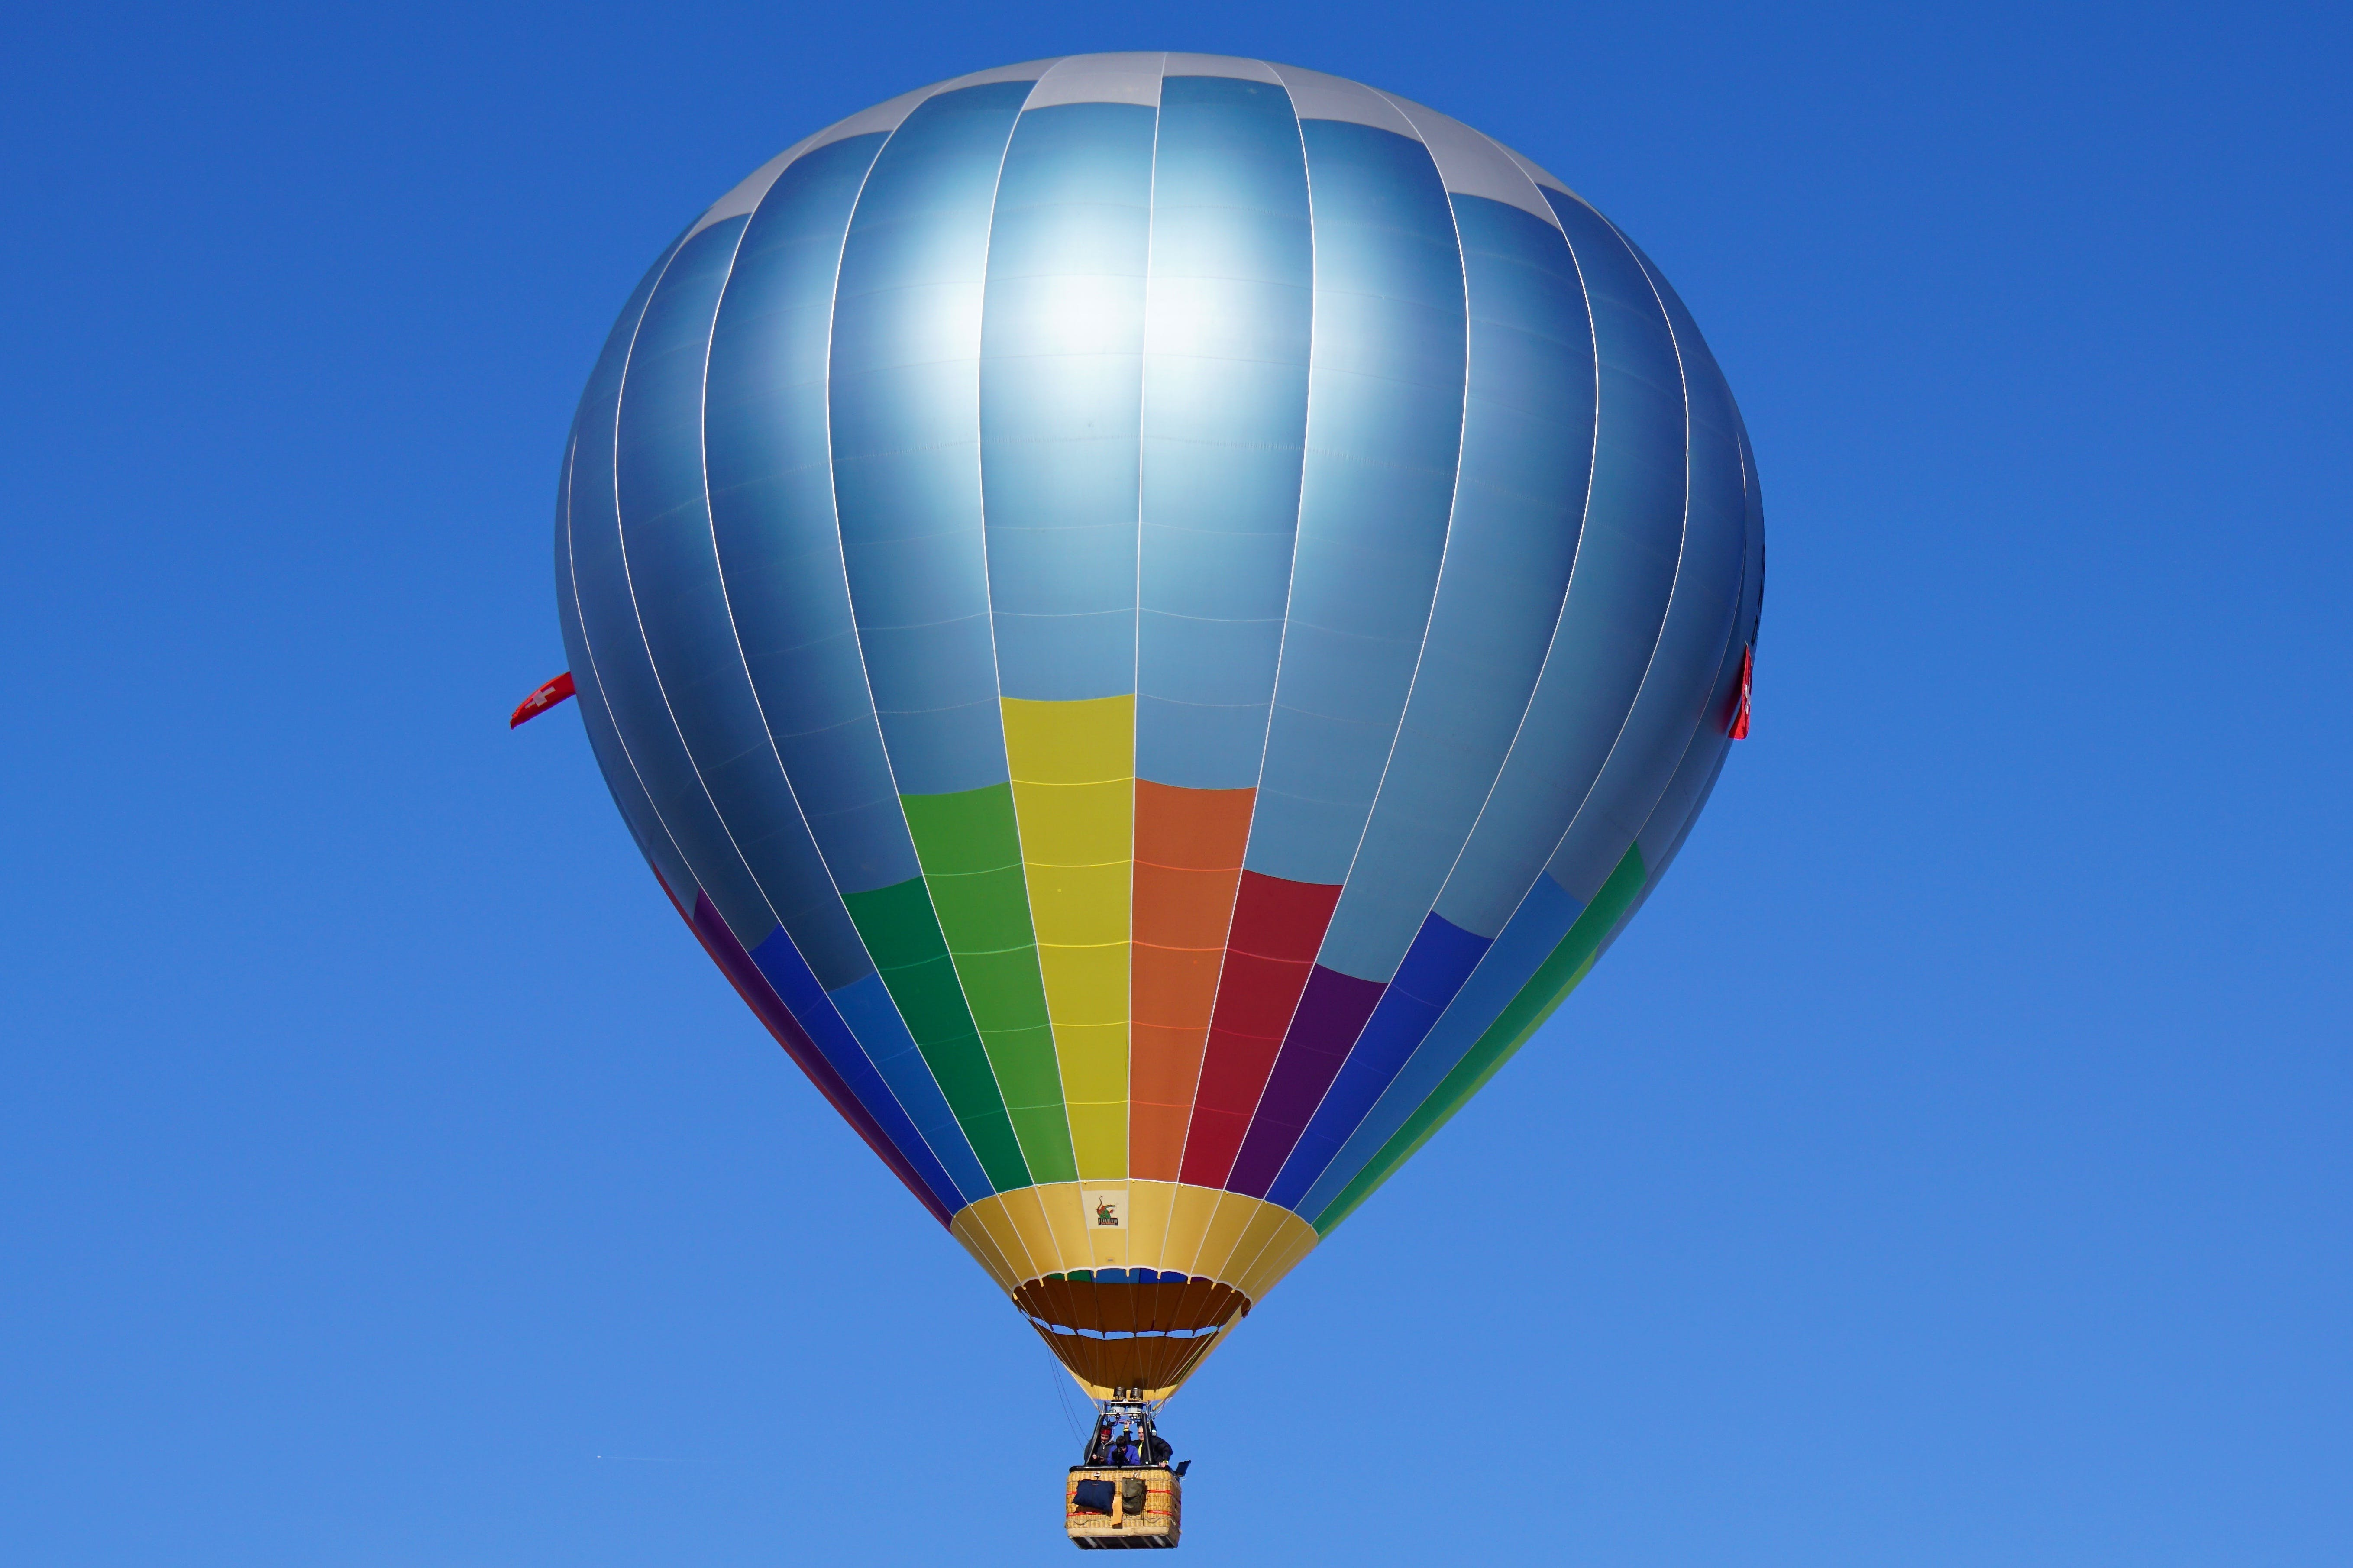 Hot Air Balloon Flying Against Blue Sky